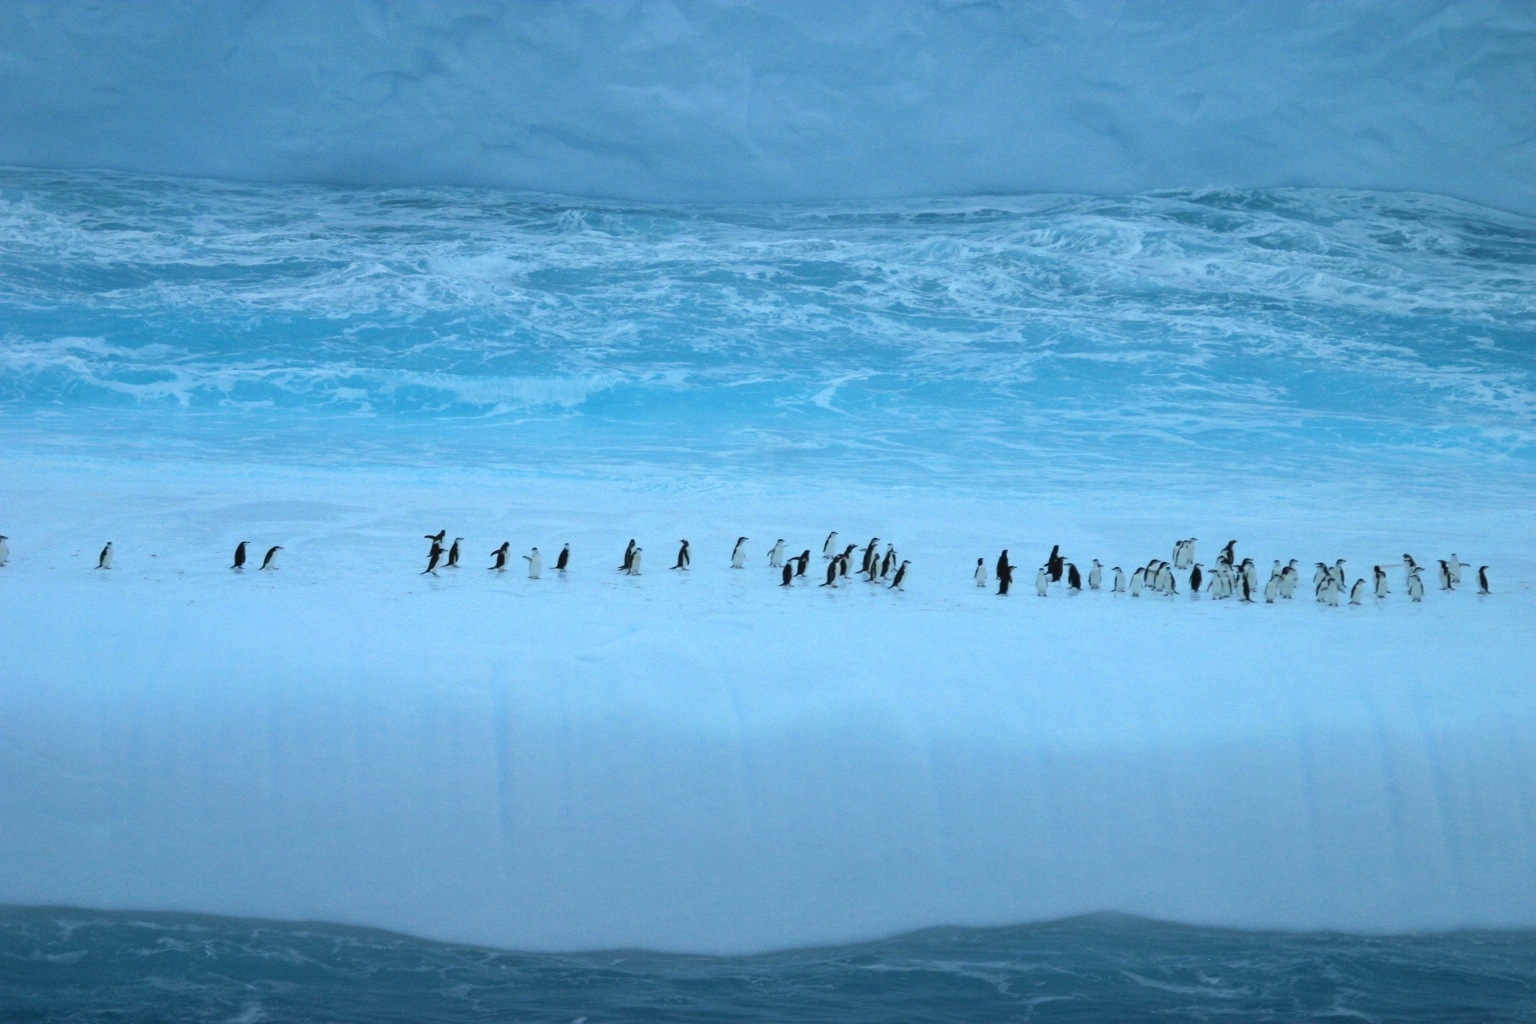 Penguins on a ice floe off Elephant island Antarctica by ian.dinmore